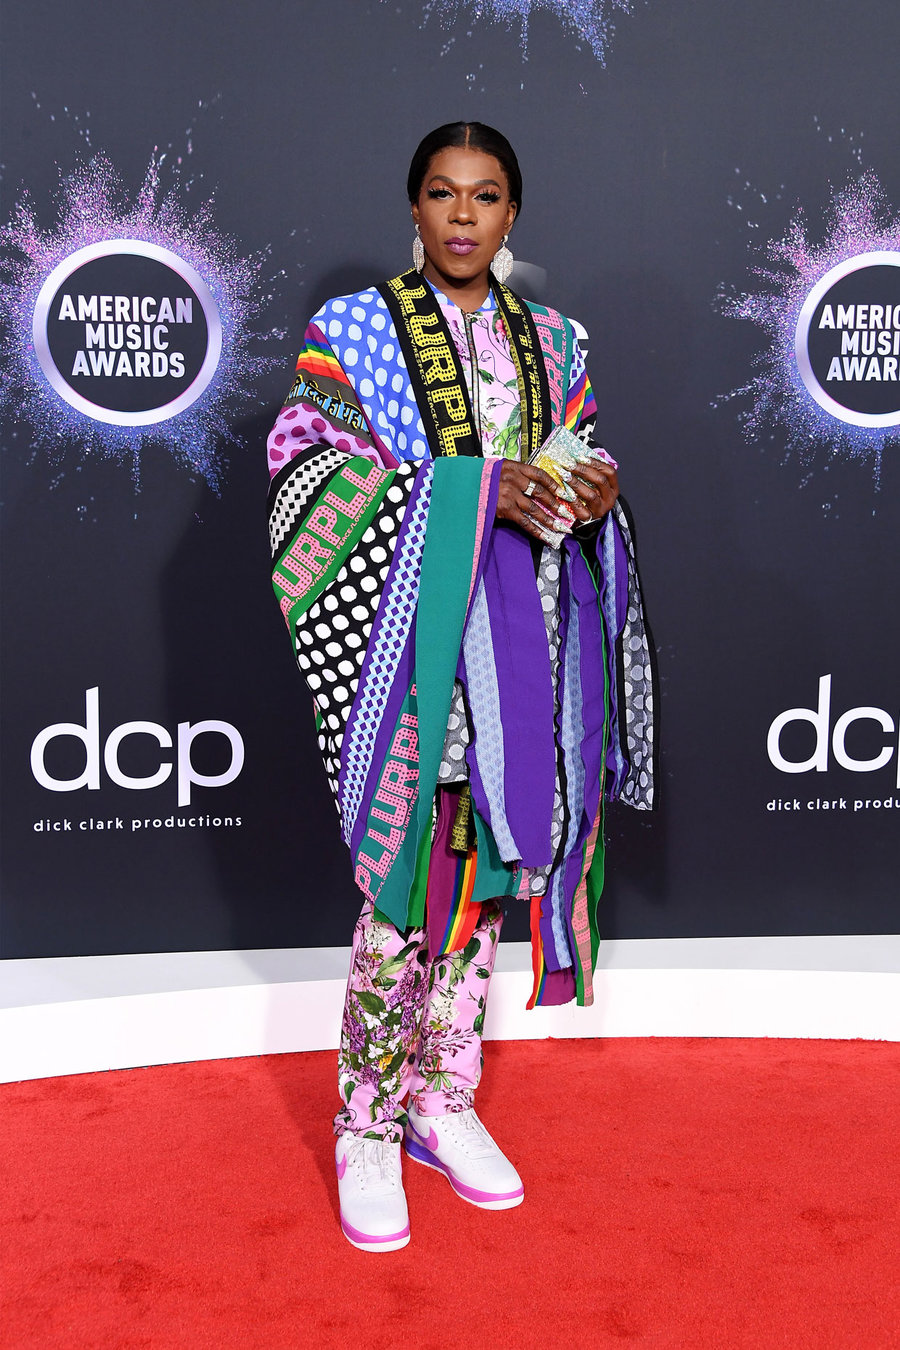 Big Freedia 2019AmericanMusicAwards - American Music Awards 2019: Фотографии с красной дорожки